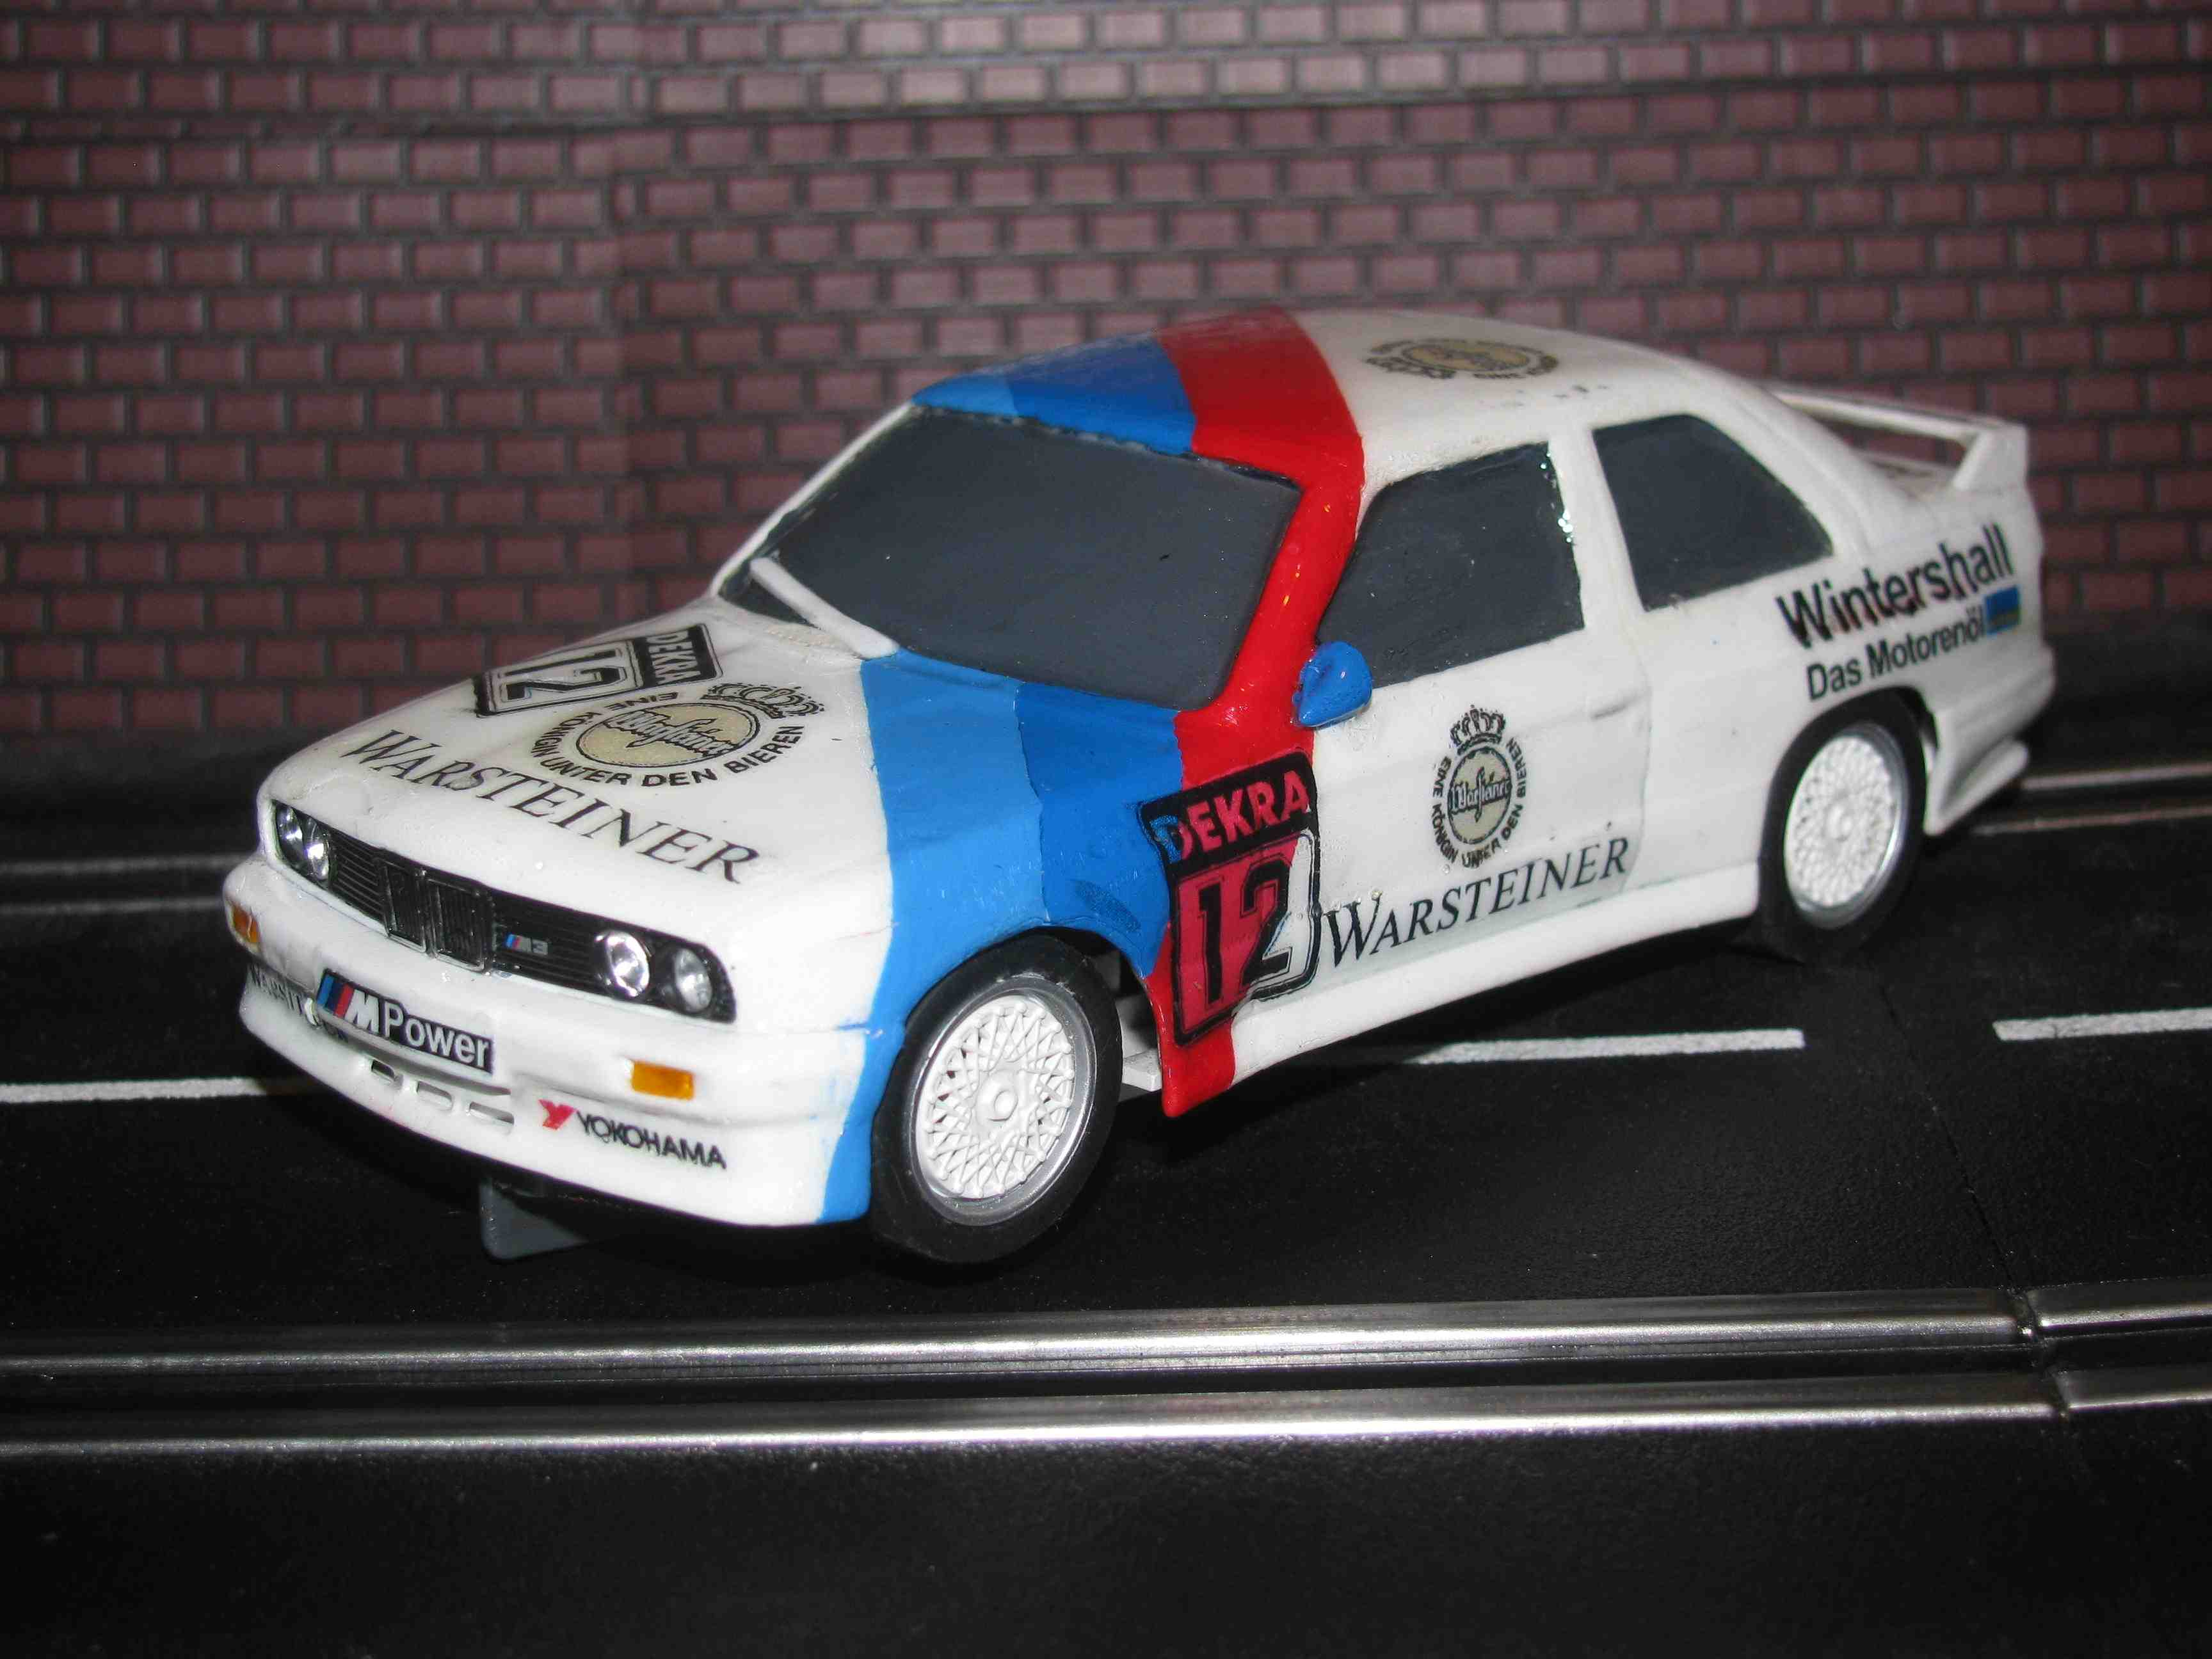 * SOLD * Fly BMW M3 E30 Mpower Wintershall Racing Slot Car 1/32 Made in Spain - Runs Very Fast